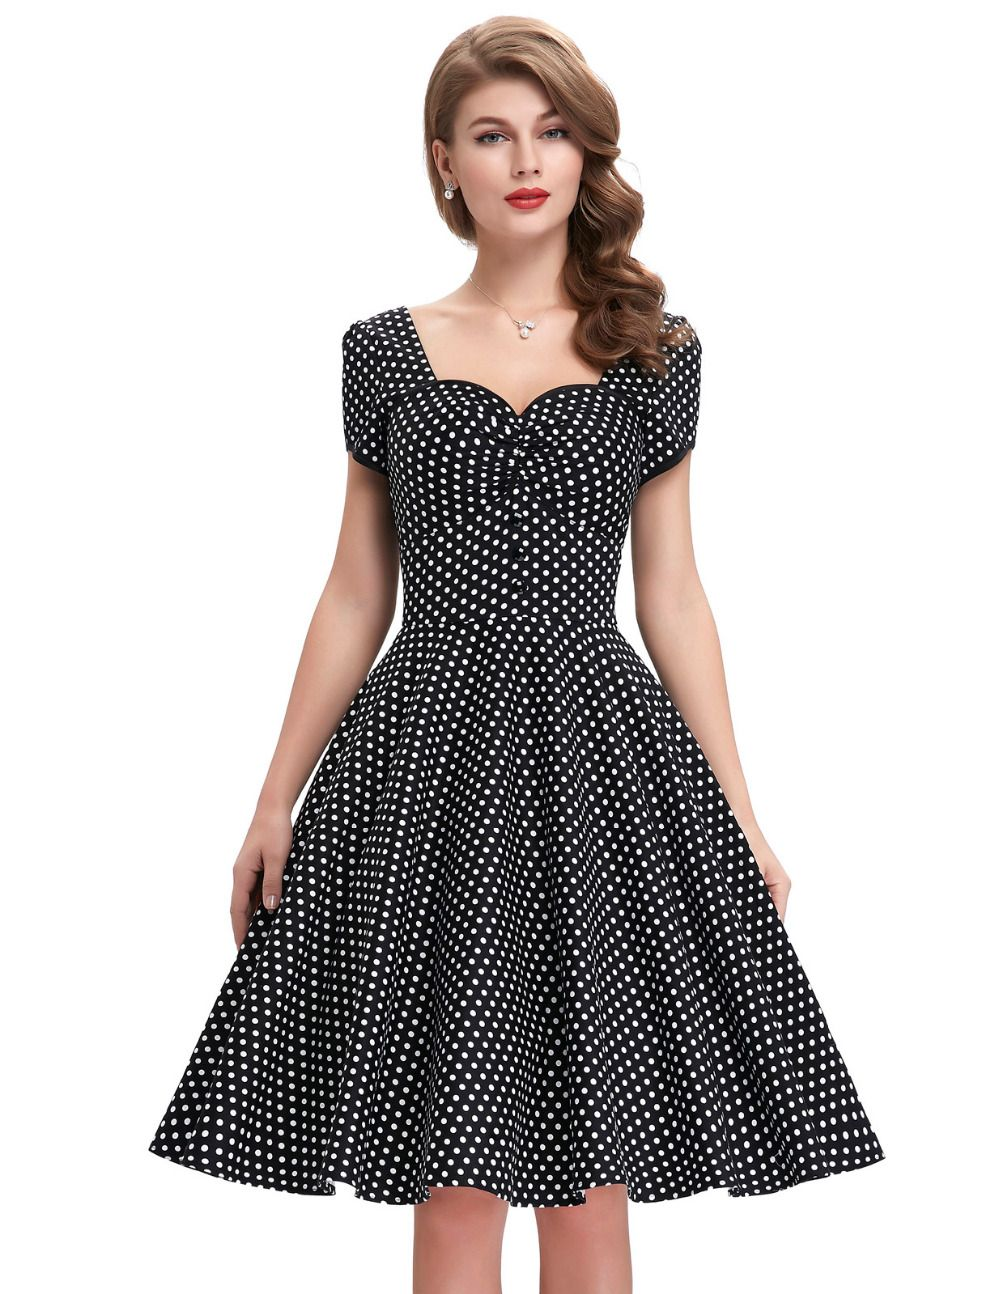 d8c1256cc6fc7 Elegant Wear To Work Women Dress Cotton Robe Vintage 50s 60s Vestido ...